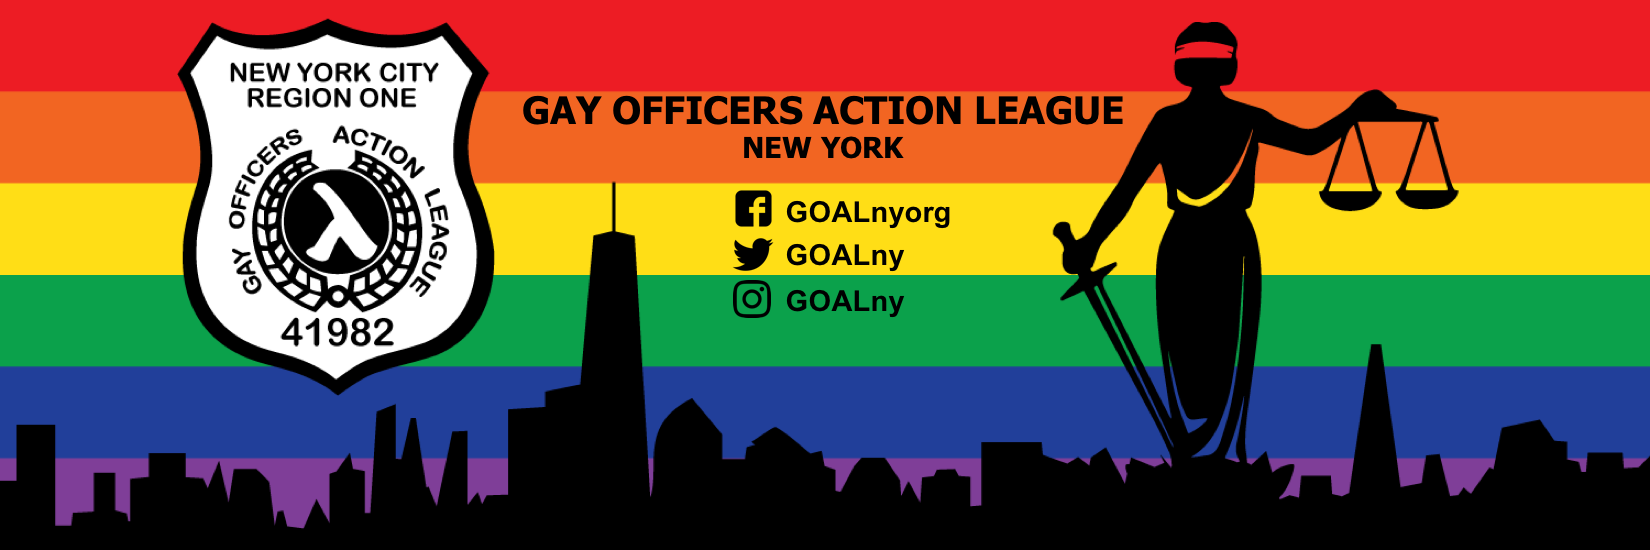 Gay officers action league of new england